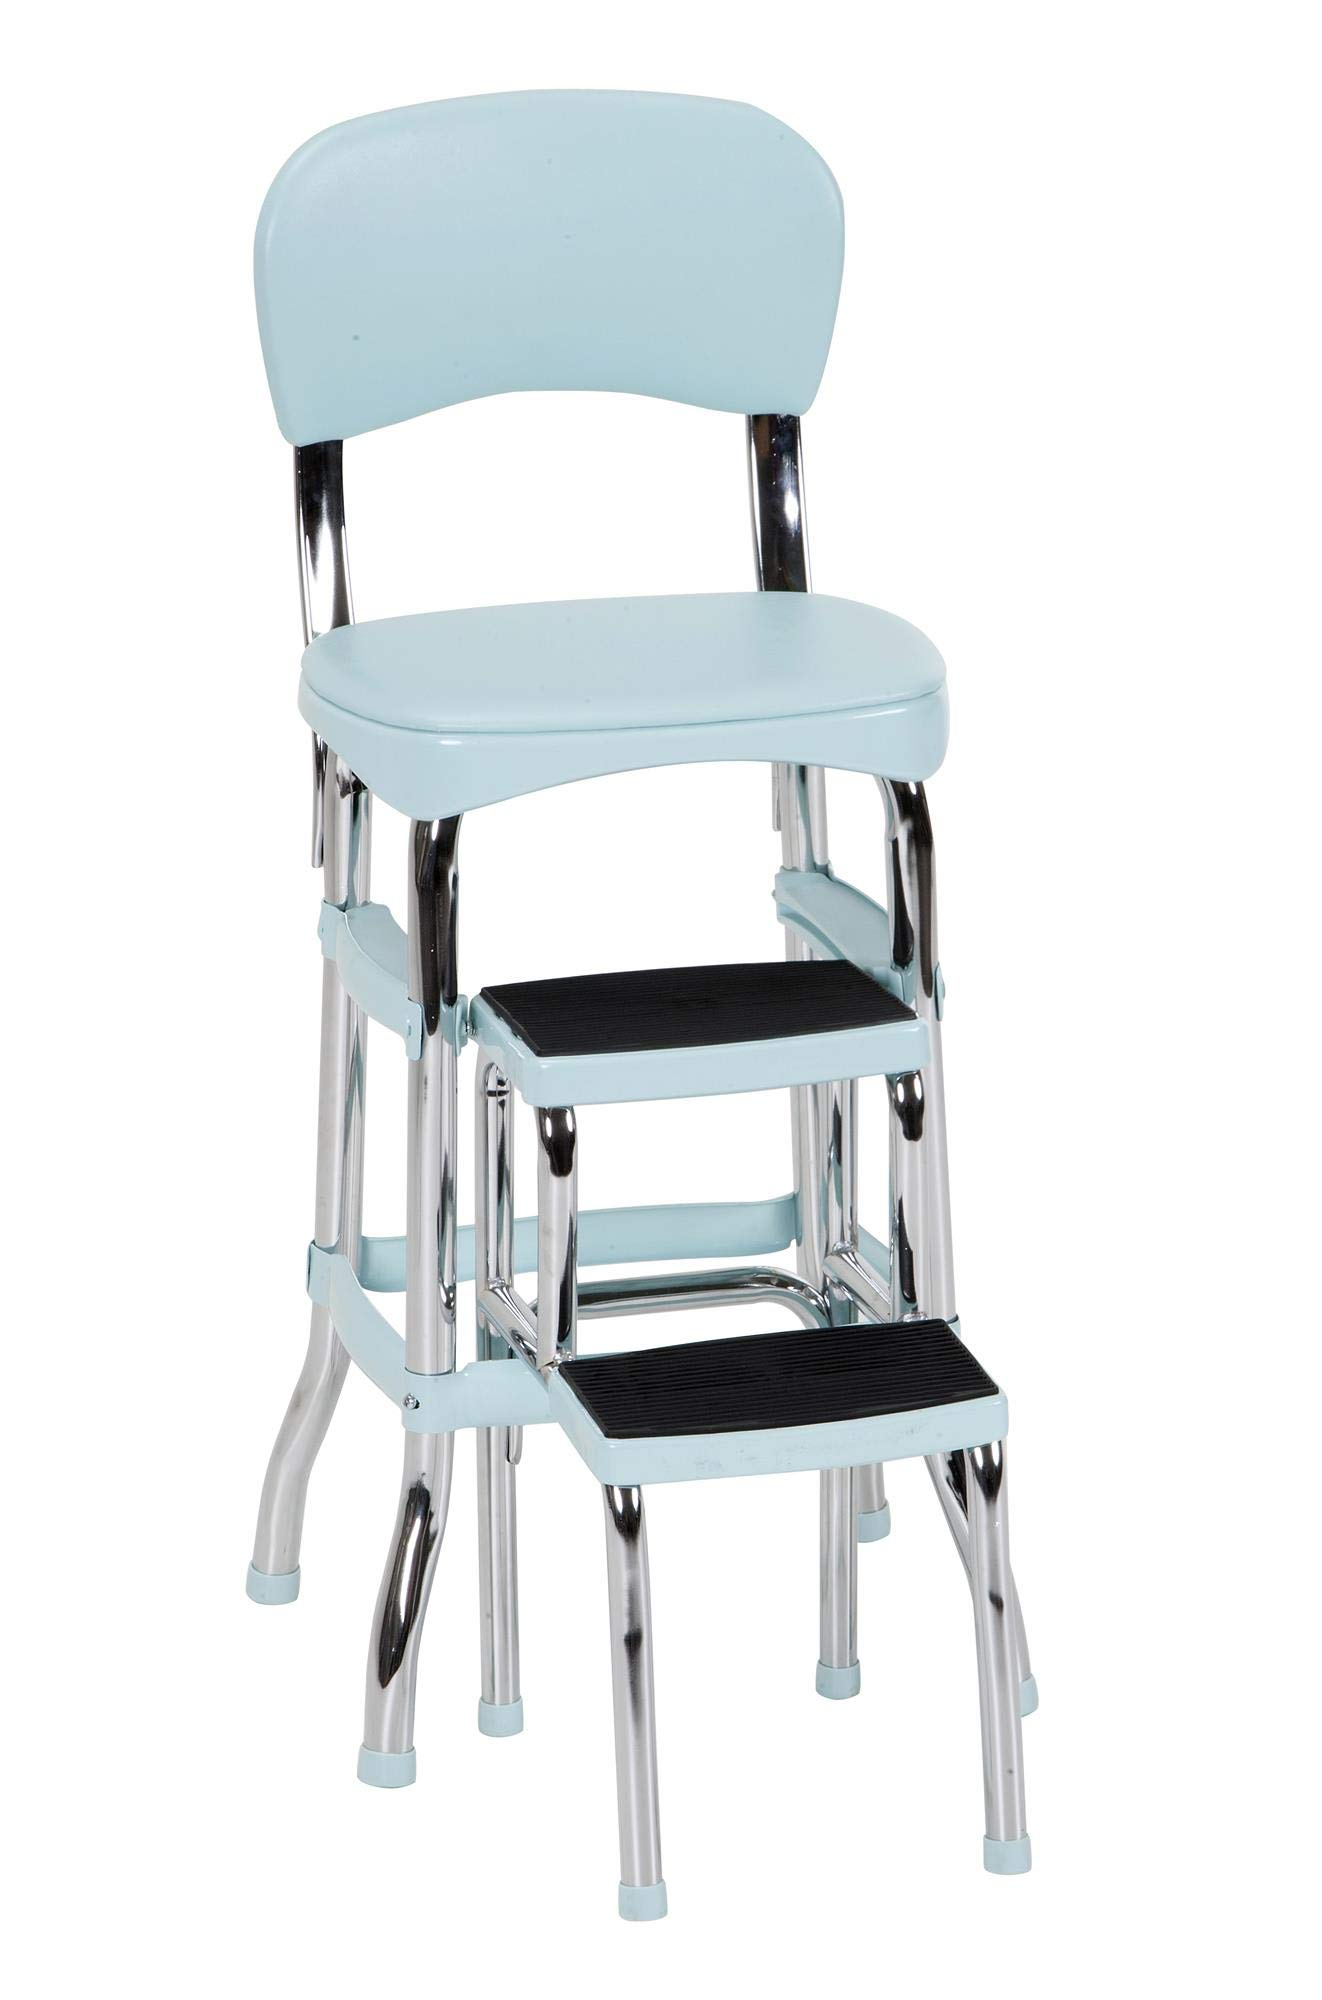 COSCO Stylaire Retro Chair + Step Stool with sliding steps (Teal, one pack) by Cosco